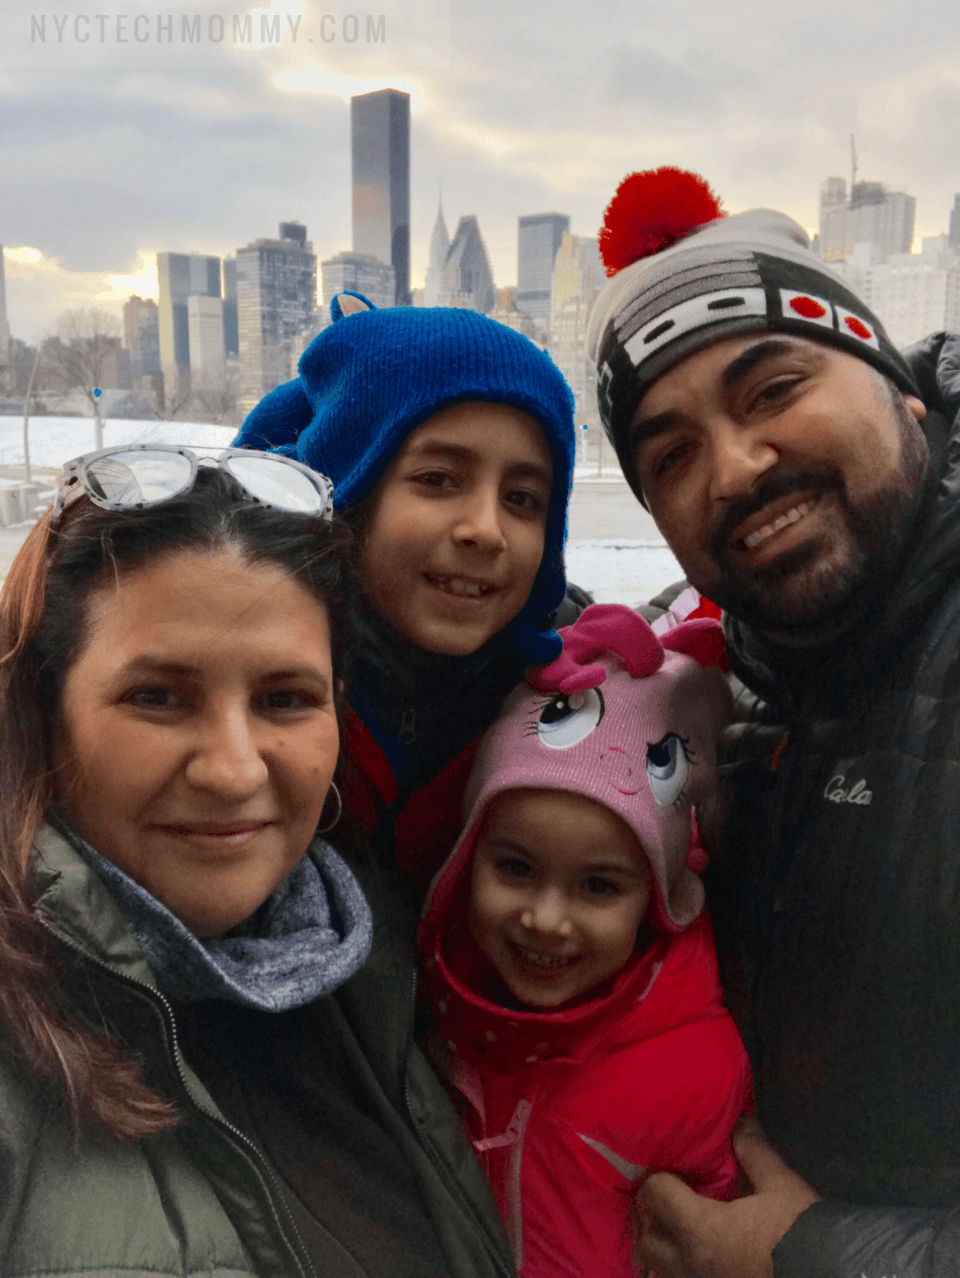 Family Fun at Roosevelt Island